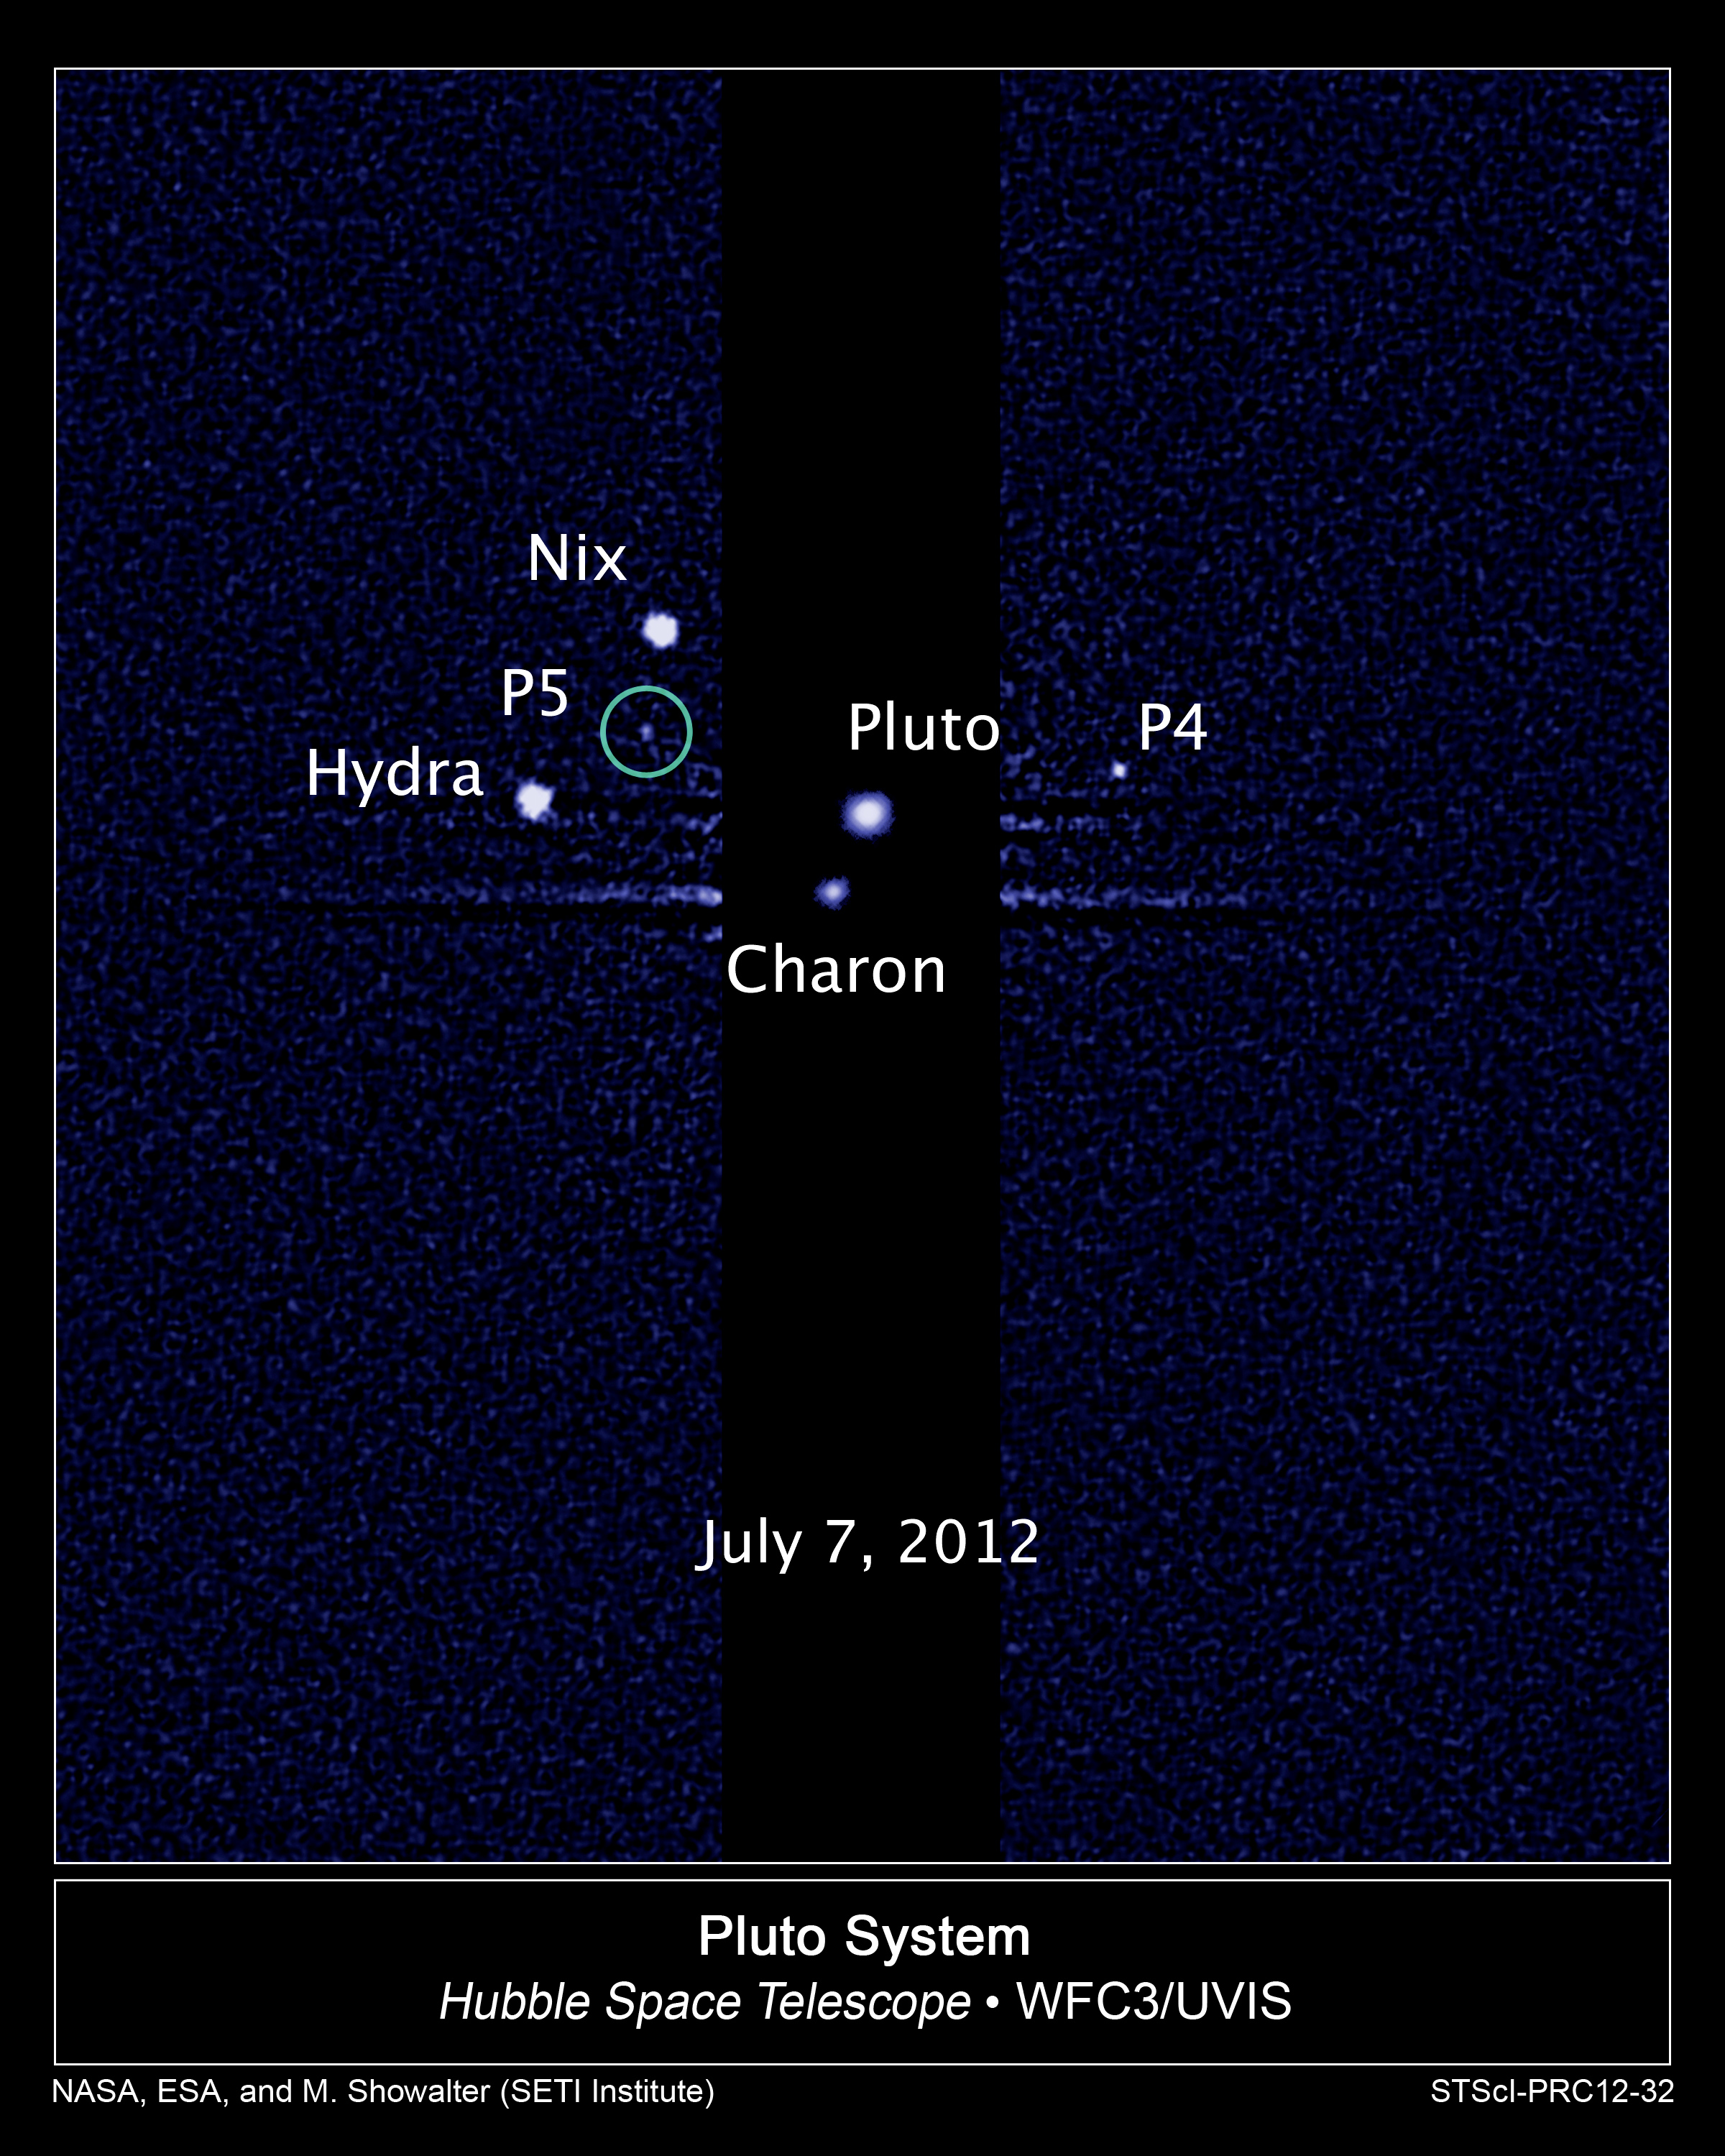 Pluto and its moons, including the recently discovered moon P5. This image, taken by NASA's Hubble Space Telescope, shows five moons orbiting the distant, icy dwarf planet Pluto. The green circle marks the newly discovered moon, designated P5, as photographed by Hubble's Wide Field Camera 3 on July 7. The observations will help scientists in their planning for the July 2015 flyby of Pluto by NASA's New Horizons spacecraft. P4 was uncovered in Hubble imagery in 2011. (Credit: NASA; ESA; M. Showalter, SETI Institute)